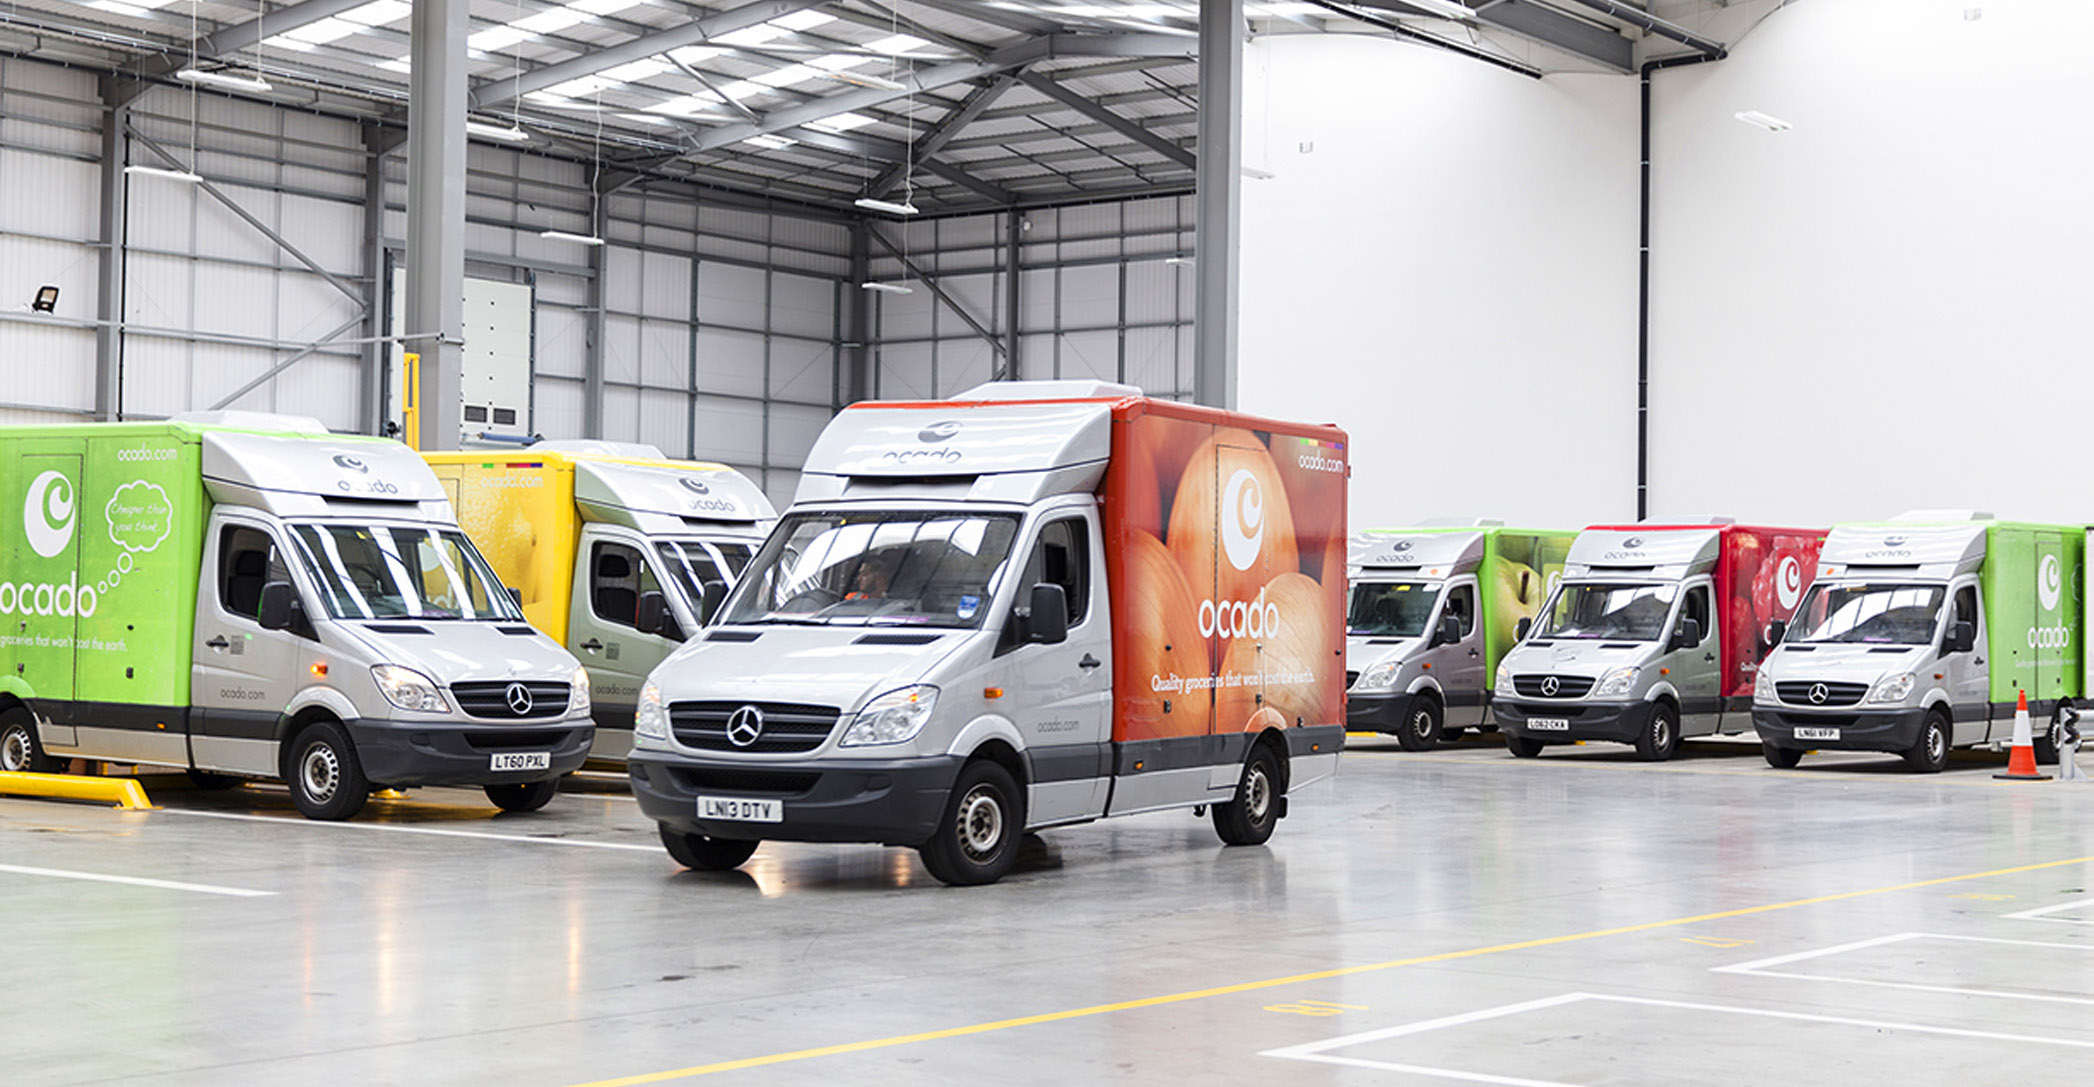 Ocado is the UK's largest online-only supermarket